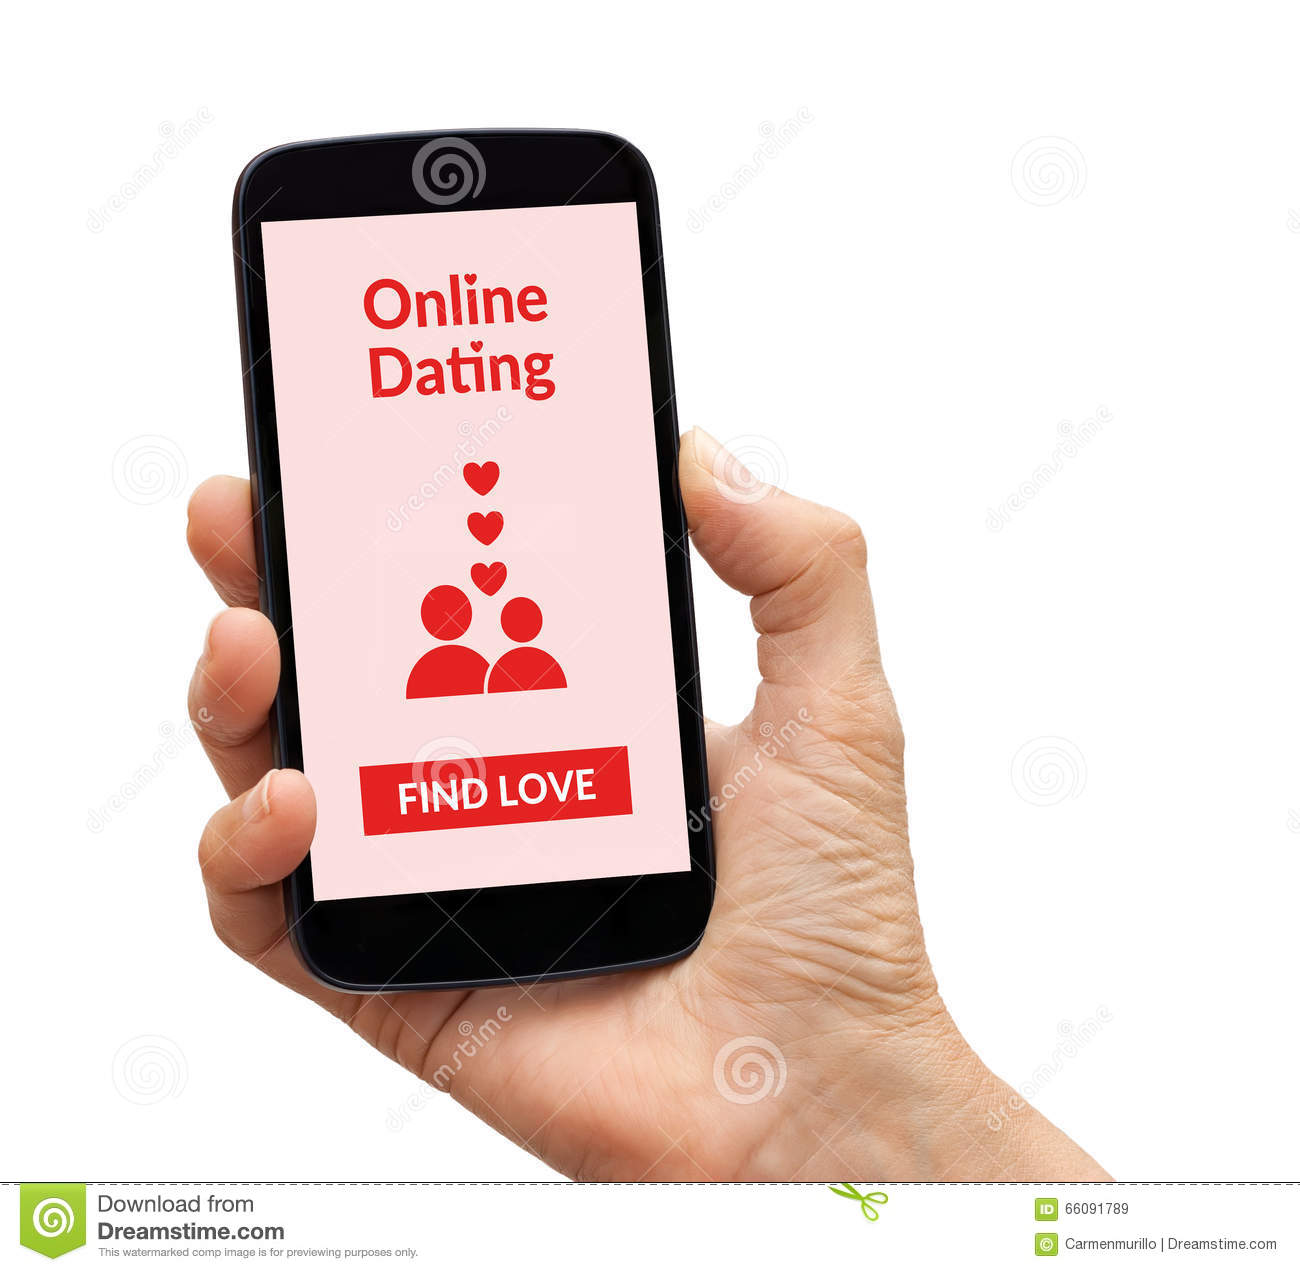 Online dating for smart singles